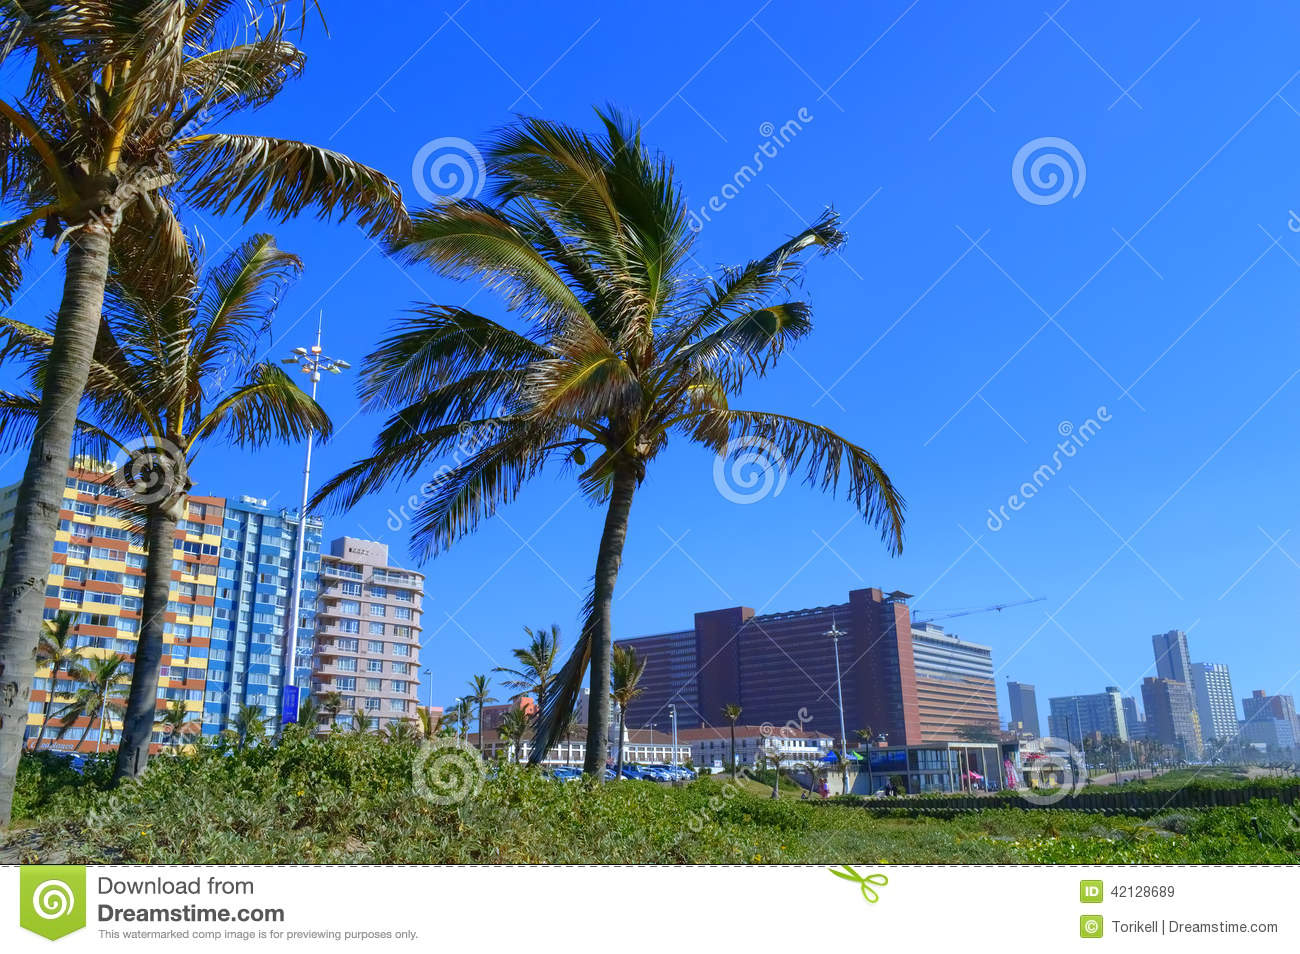 palm-trees-durban-sea-front-south-africa